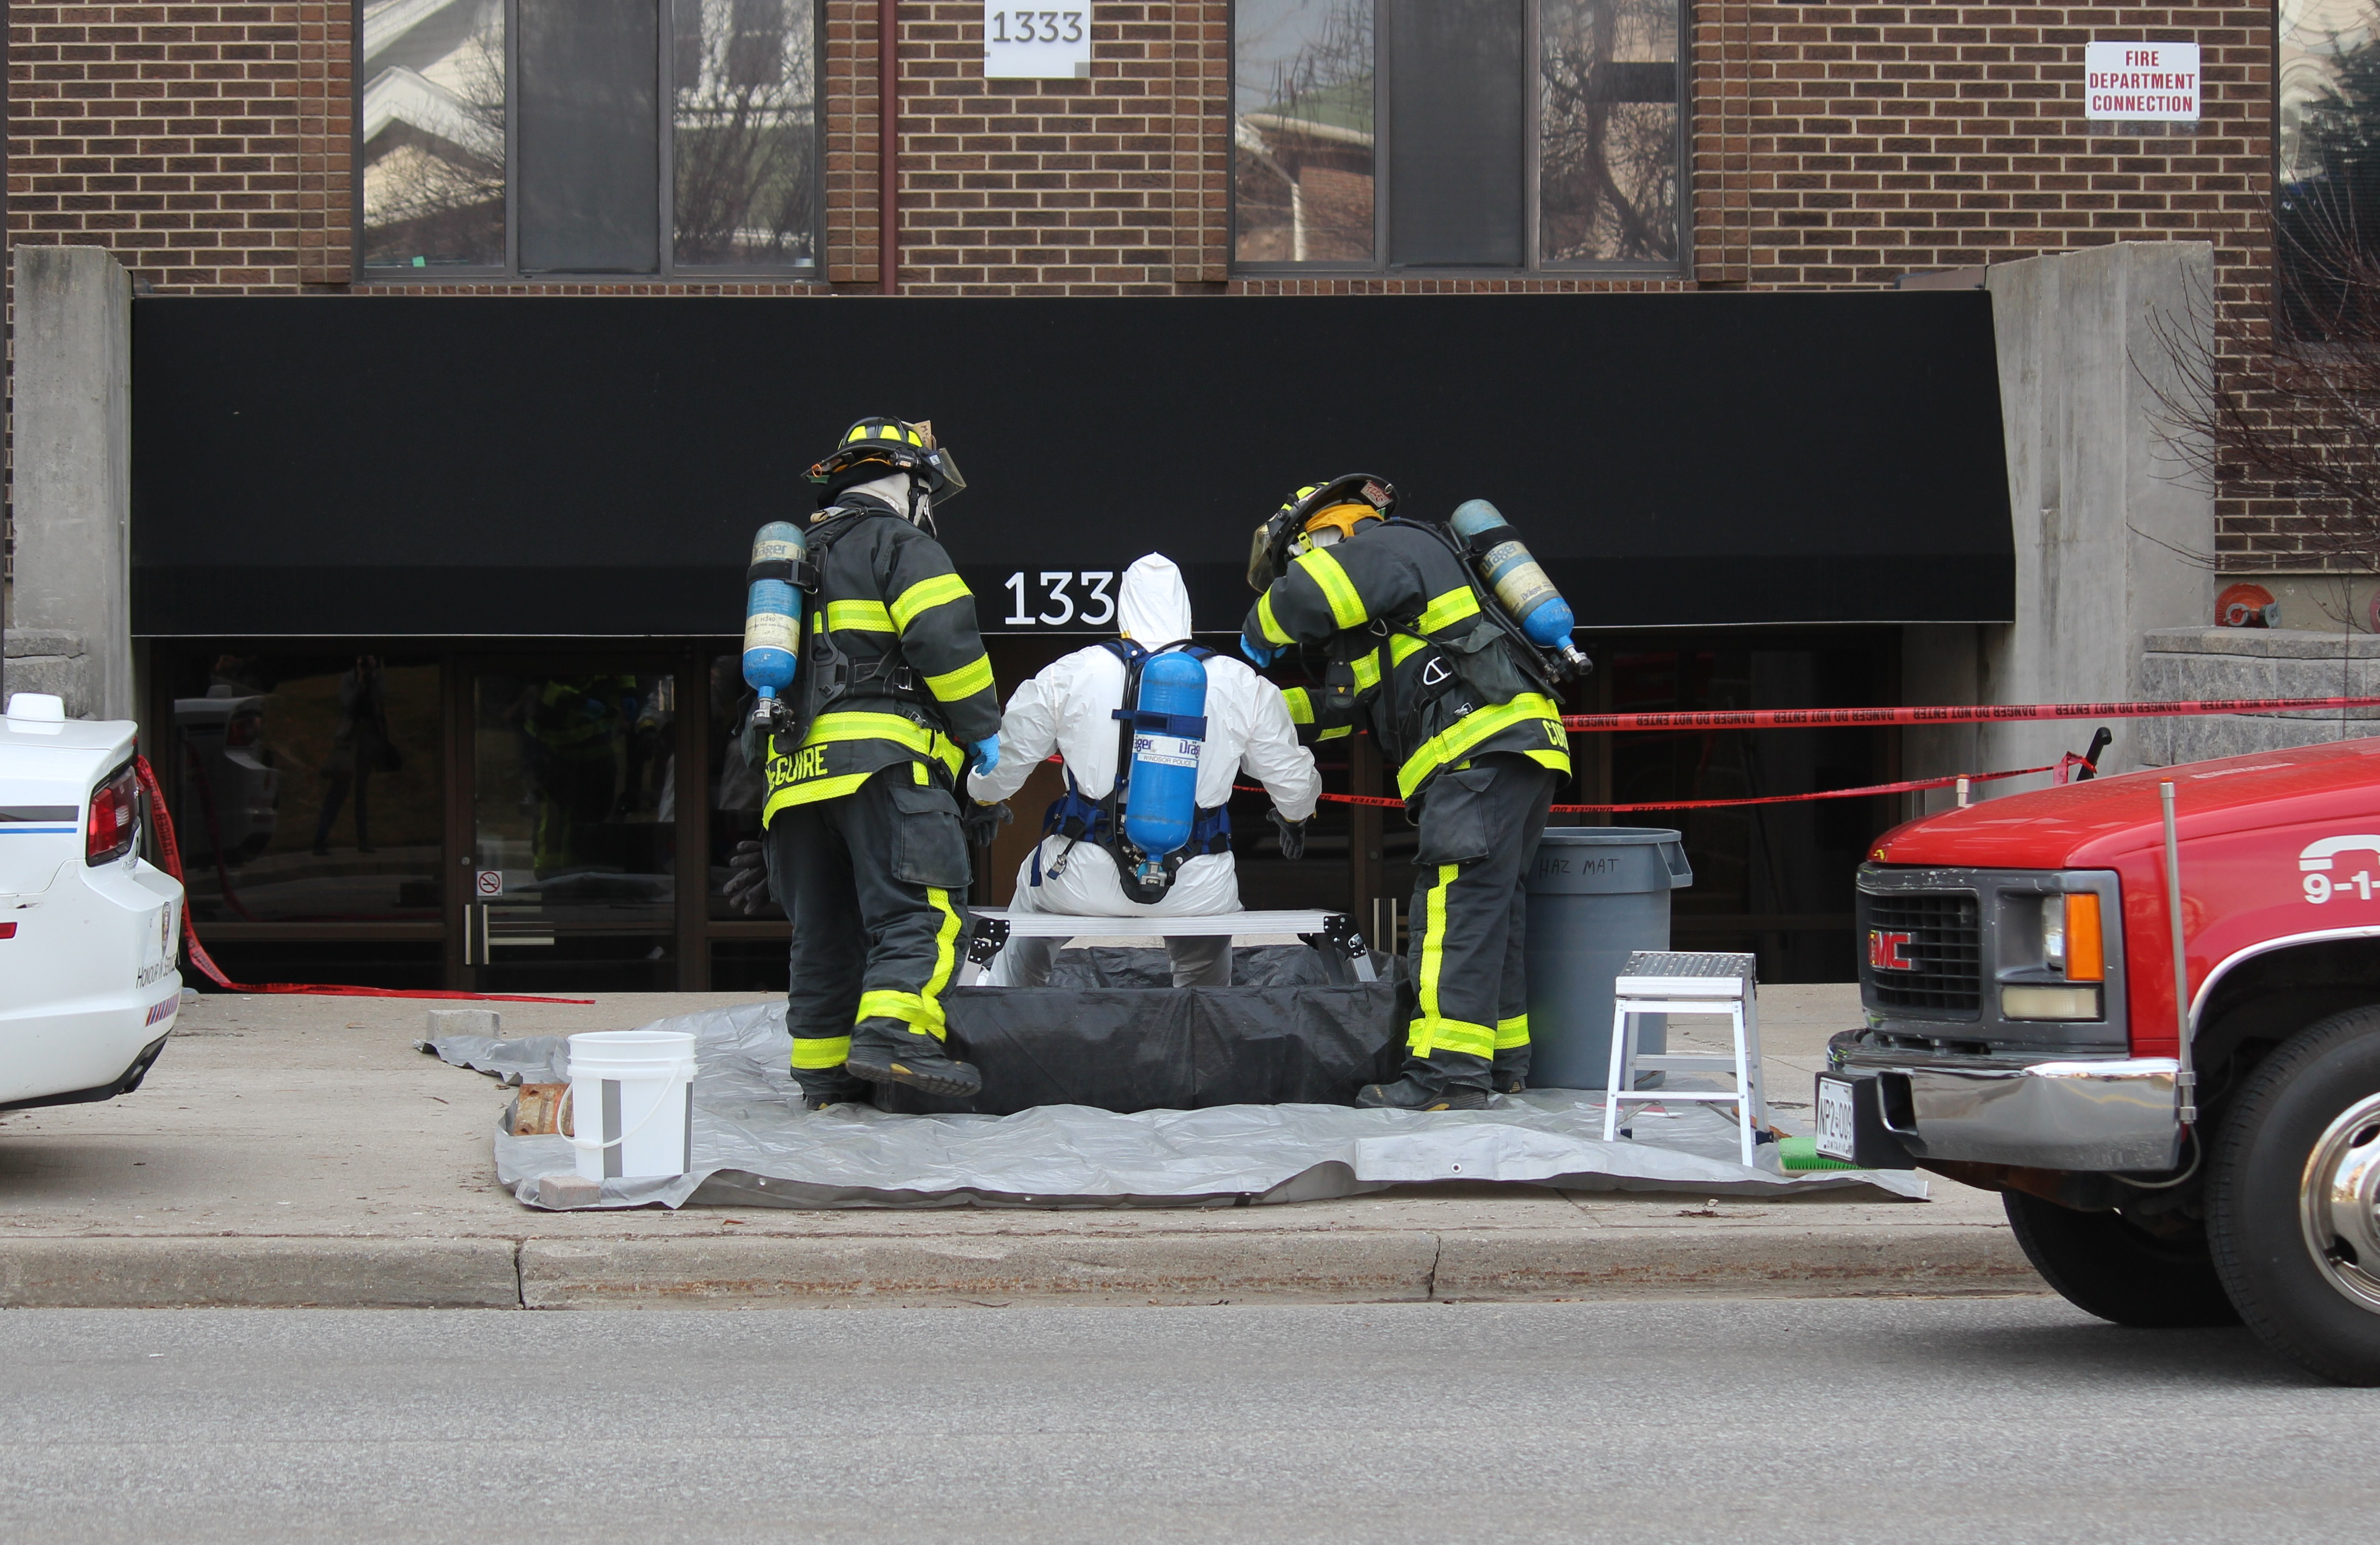 Windsor Fire Service investigate a suspicious material at apartment at 1333 Ouellette Ave. March 8, 2016. (Photo by Maureen Revait)